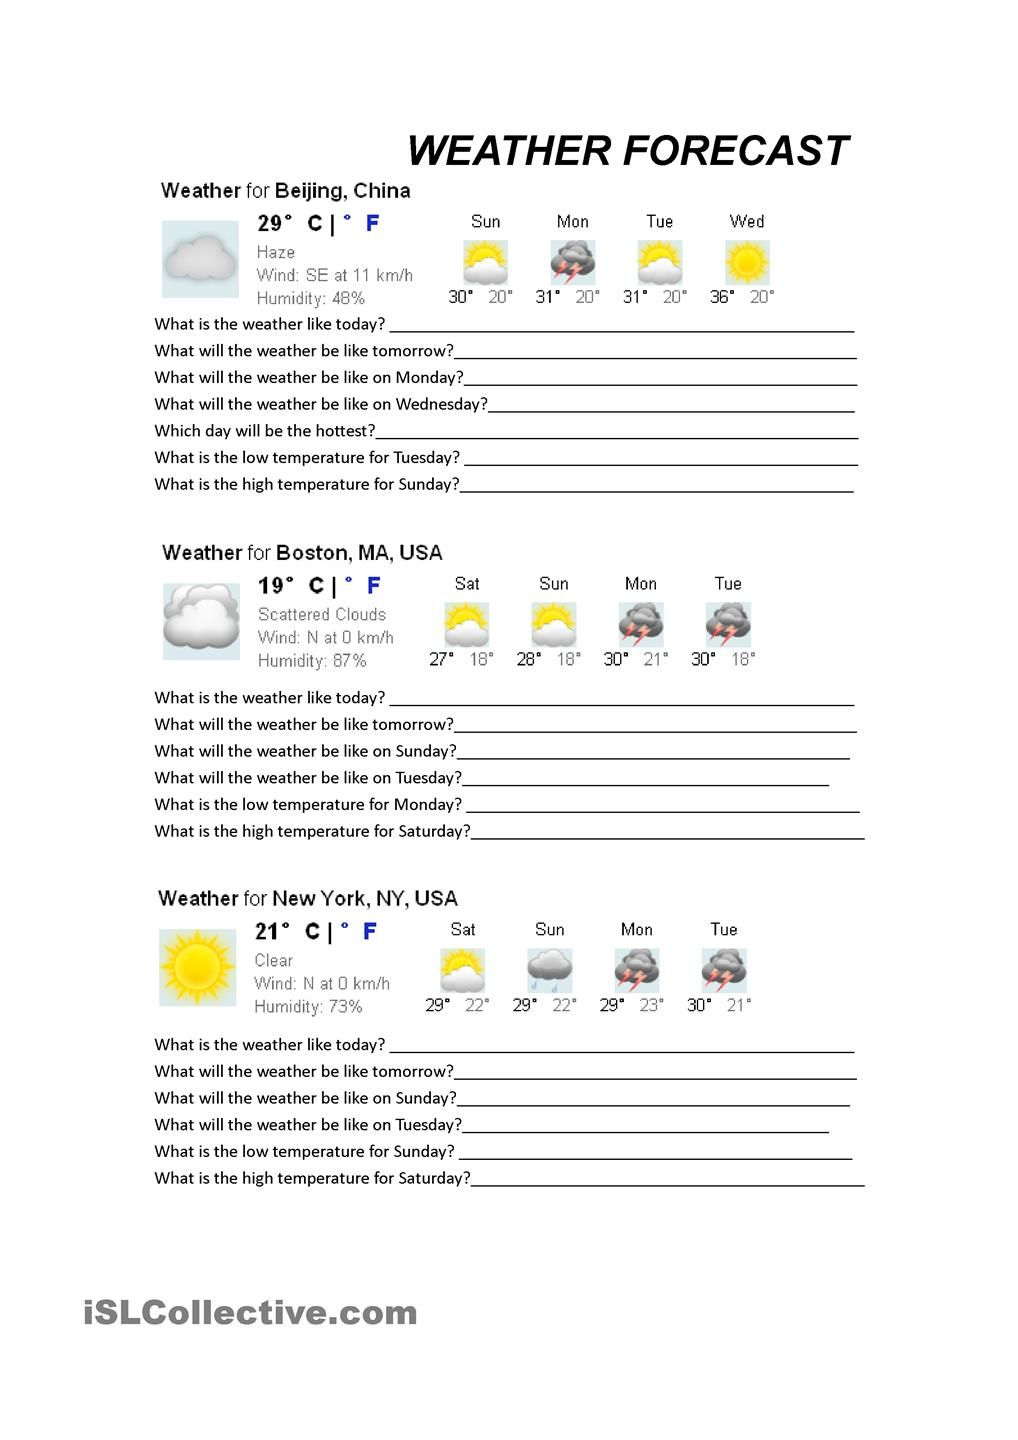 Weather Forecasts Special Education Need Pinterest Weather - Weather forecast printable